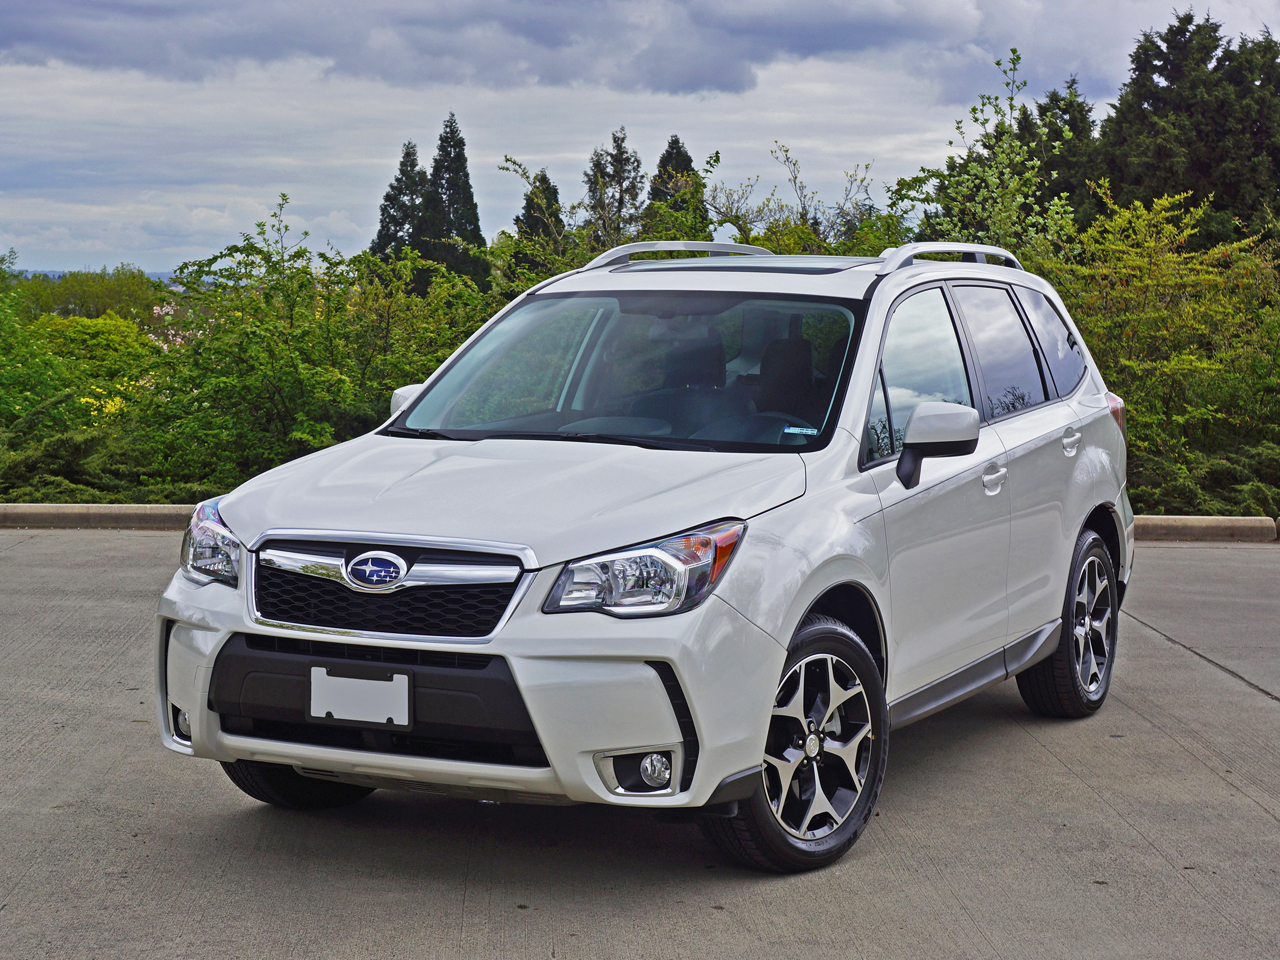 2016 subaru forester 2 0xt touring road test review carcostcanada. Black Bedroom Furniture Sets. Home Design Ideas